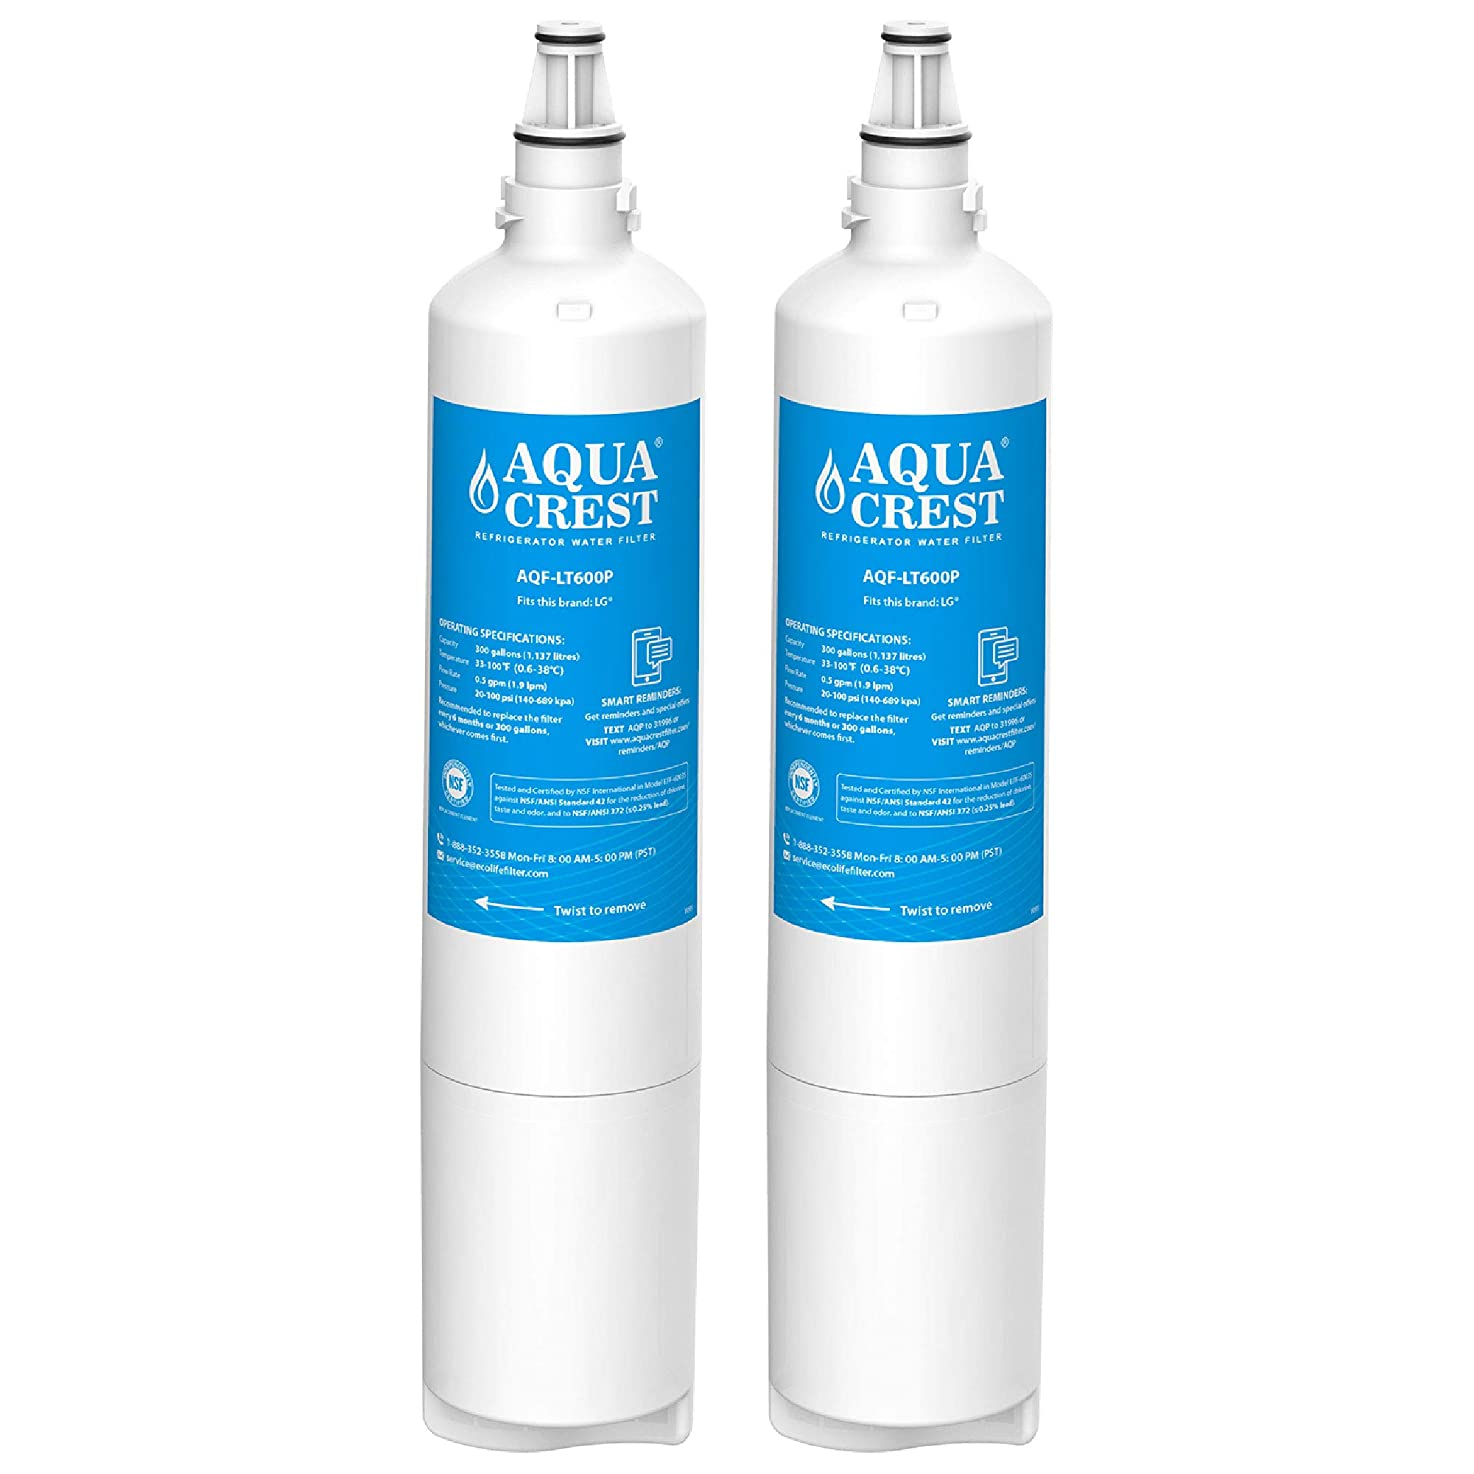 AQUACREST 5231JA2006A Refrigerator Water Filter, Compatible with LG LT600P, 5231JA2006B, 5231JA2006A, KENMORE 46-9990, 9990 (Pack of 2) jnjxyvivslpyk8